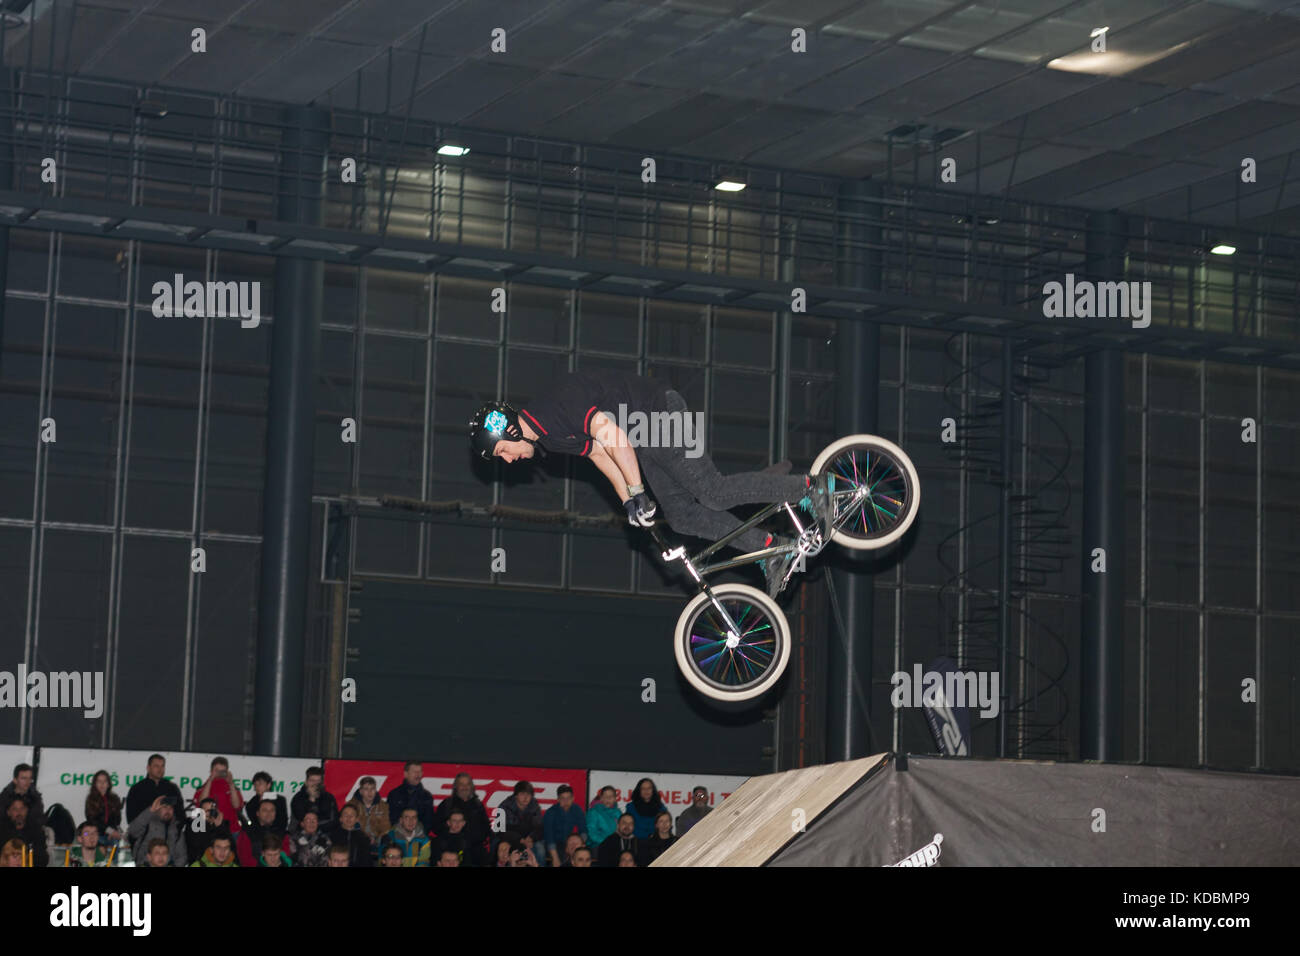 BRNO, CZECH REPUBLIC-MARCH 4,2016: Stuntman riding a bike during stunt show on International Fair for Motorcycles - Stock Image